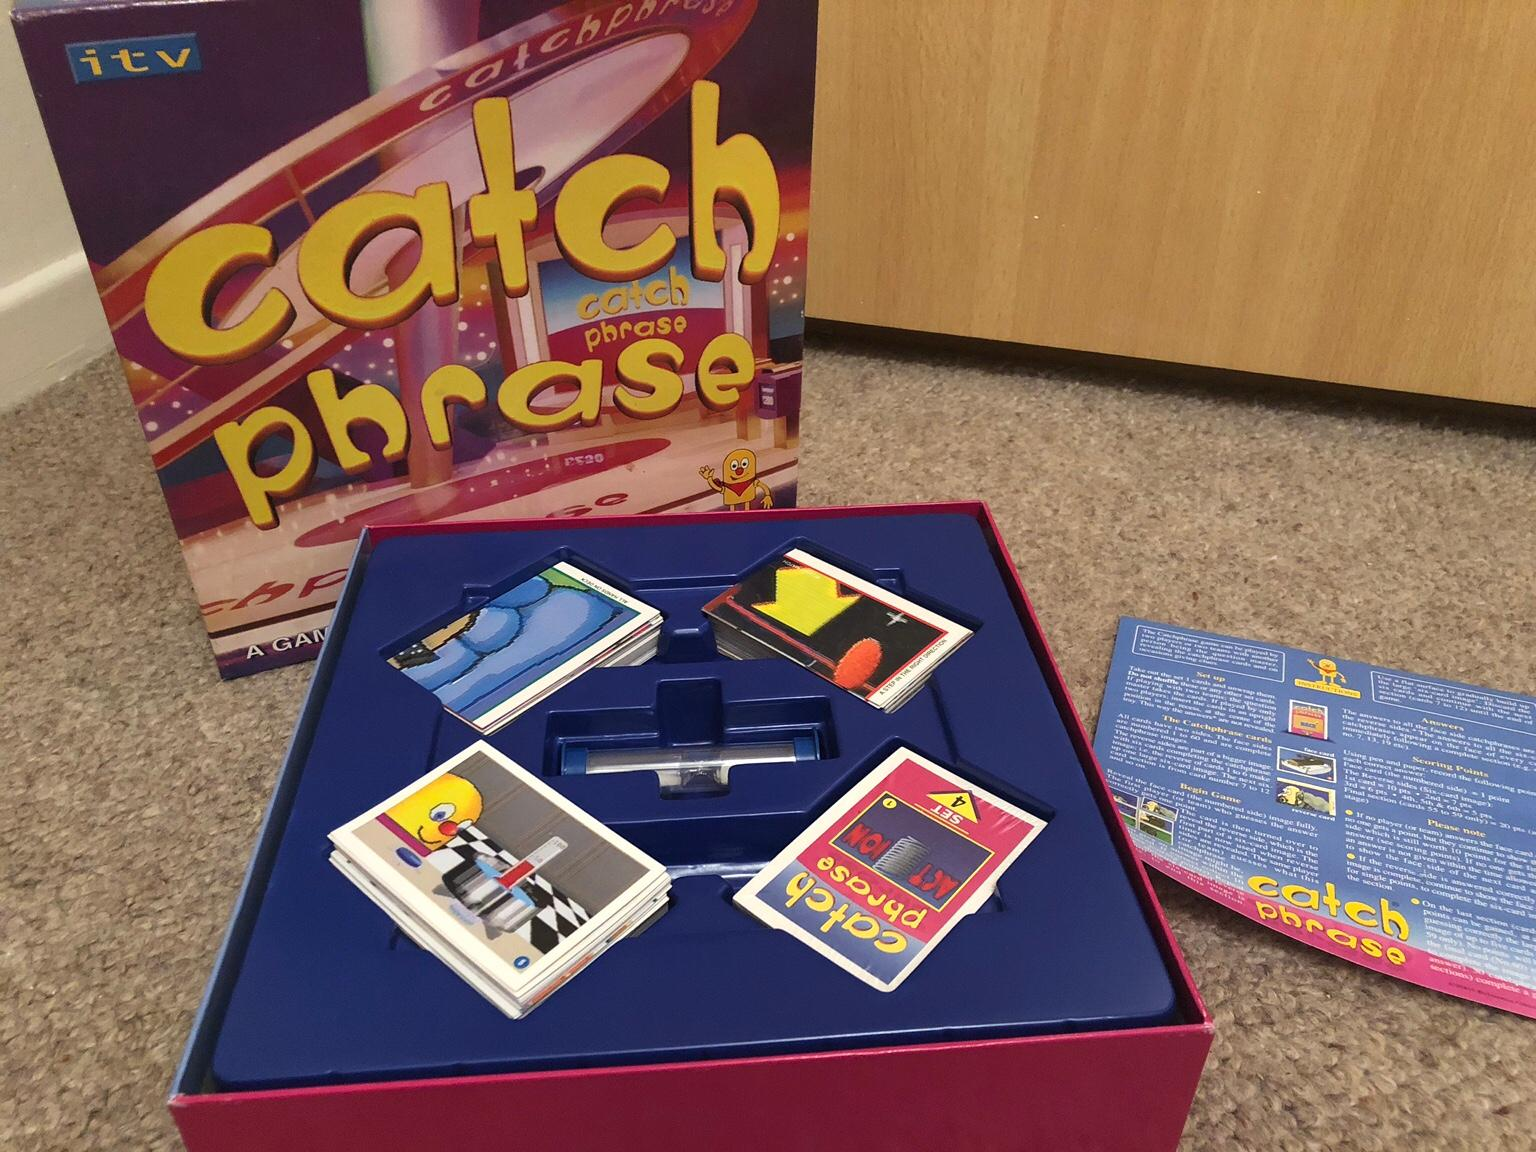 Case Blue Board Game : Catchphrase board game in s62 rotherham for £5.00 for sale shpock